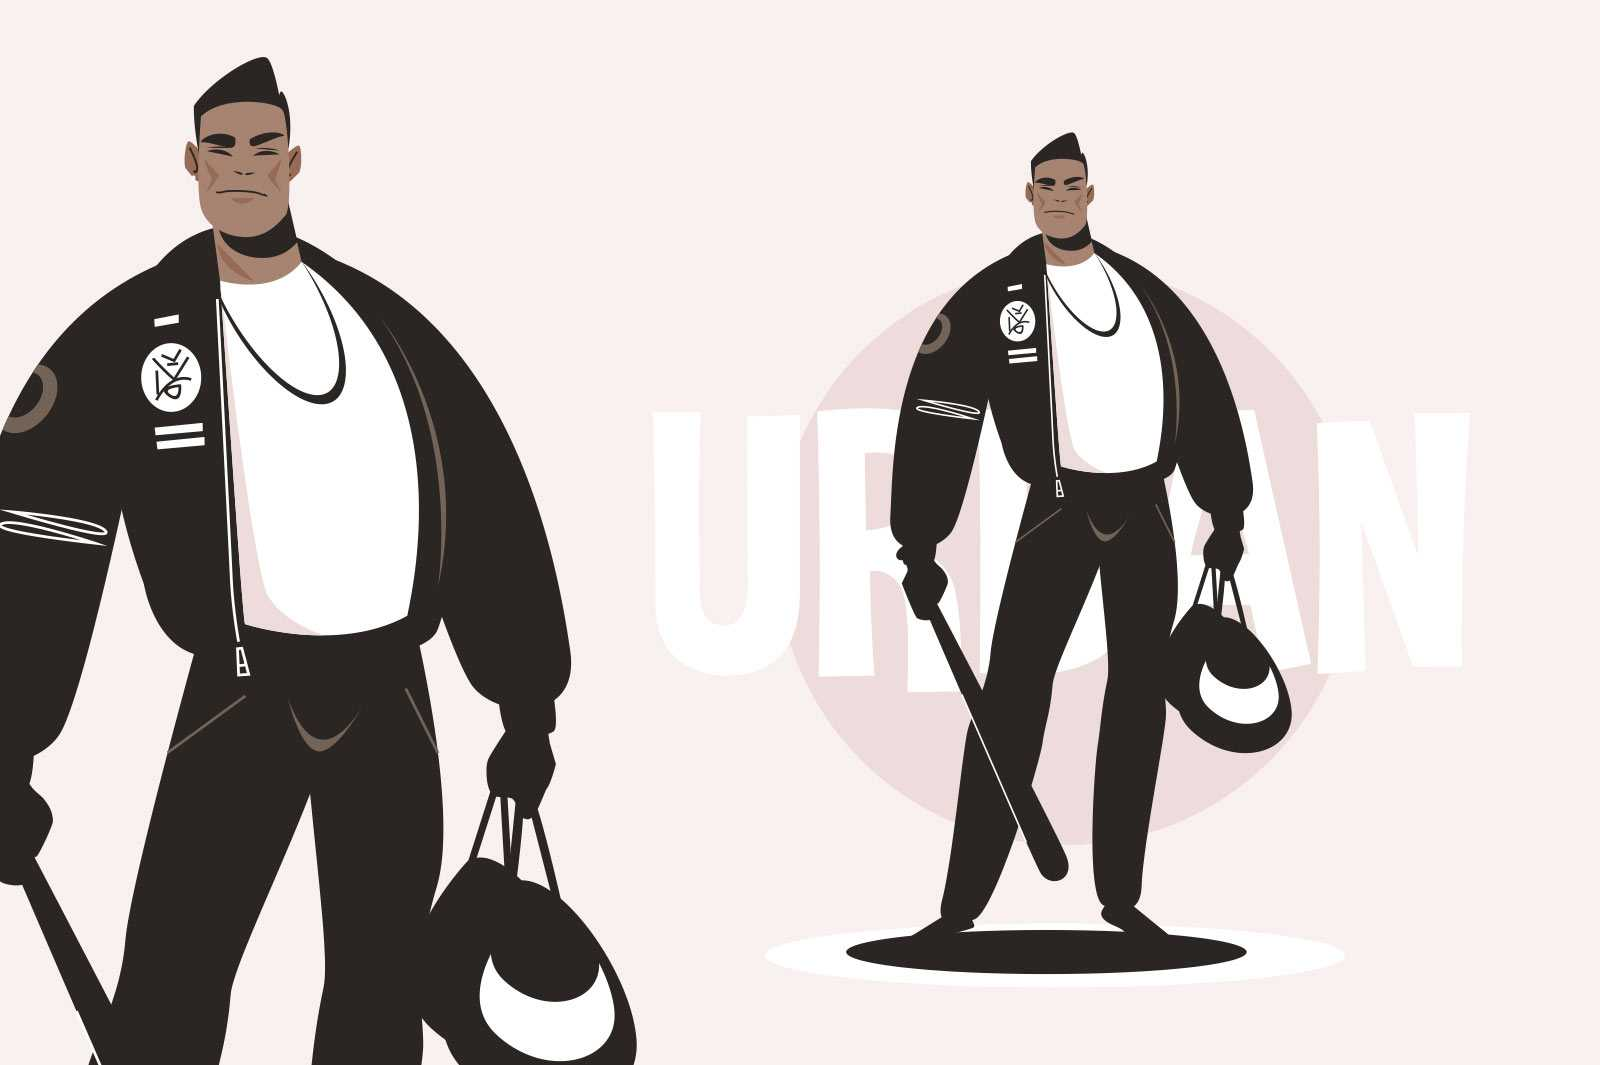 Cool strong asian guy vector illustration. Sporty man in black outfit with bag and baseball bit flat style. Fashion trend concept. Isolated on pink background